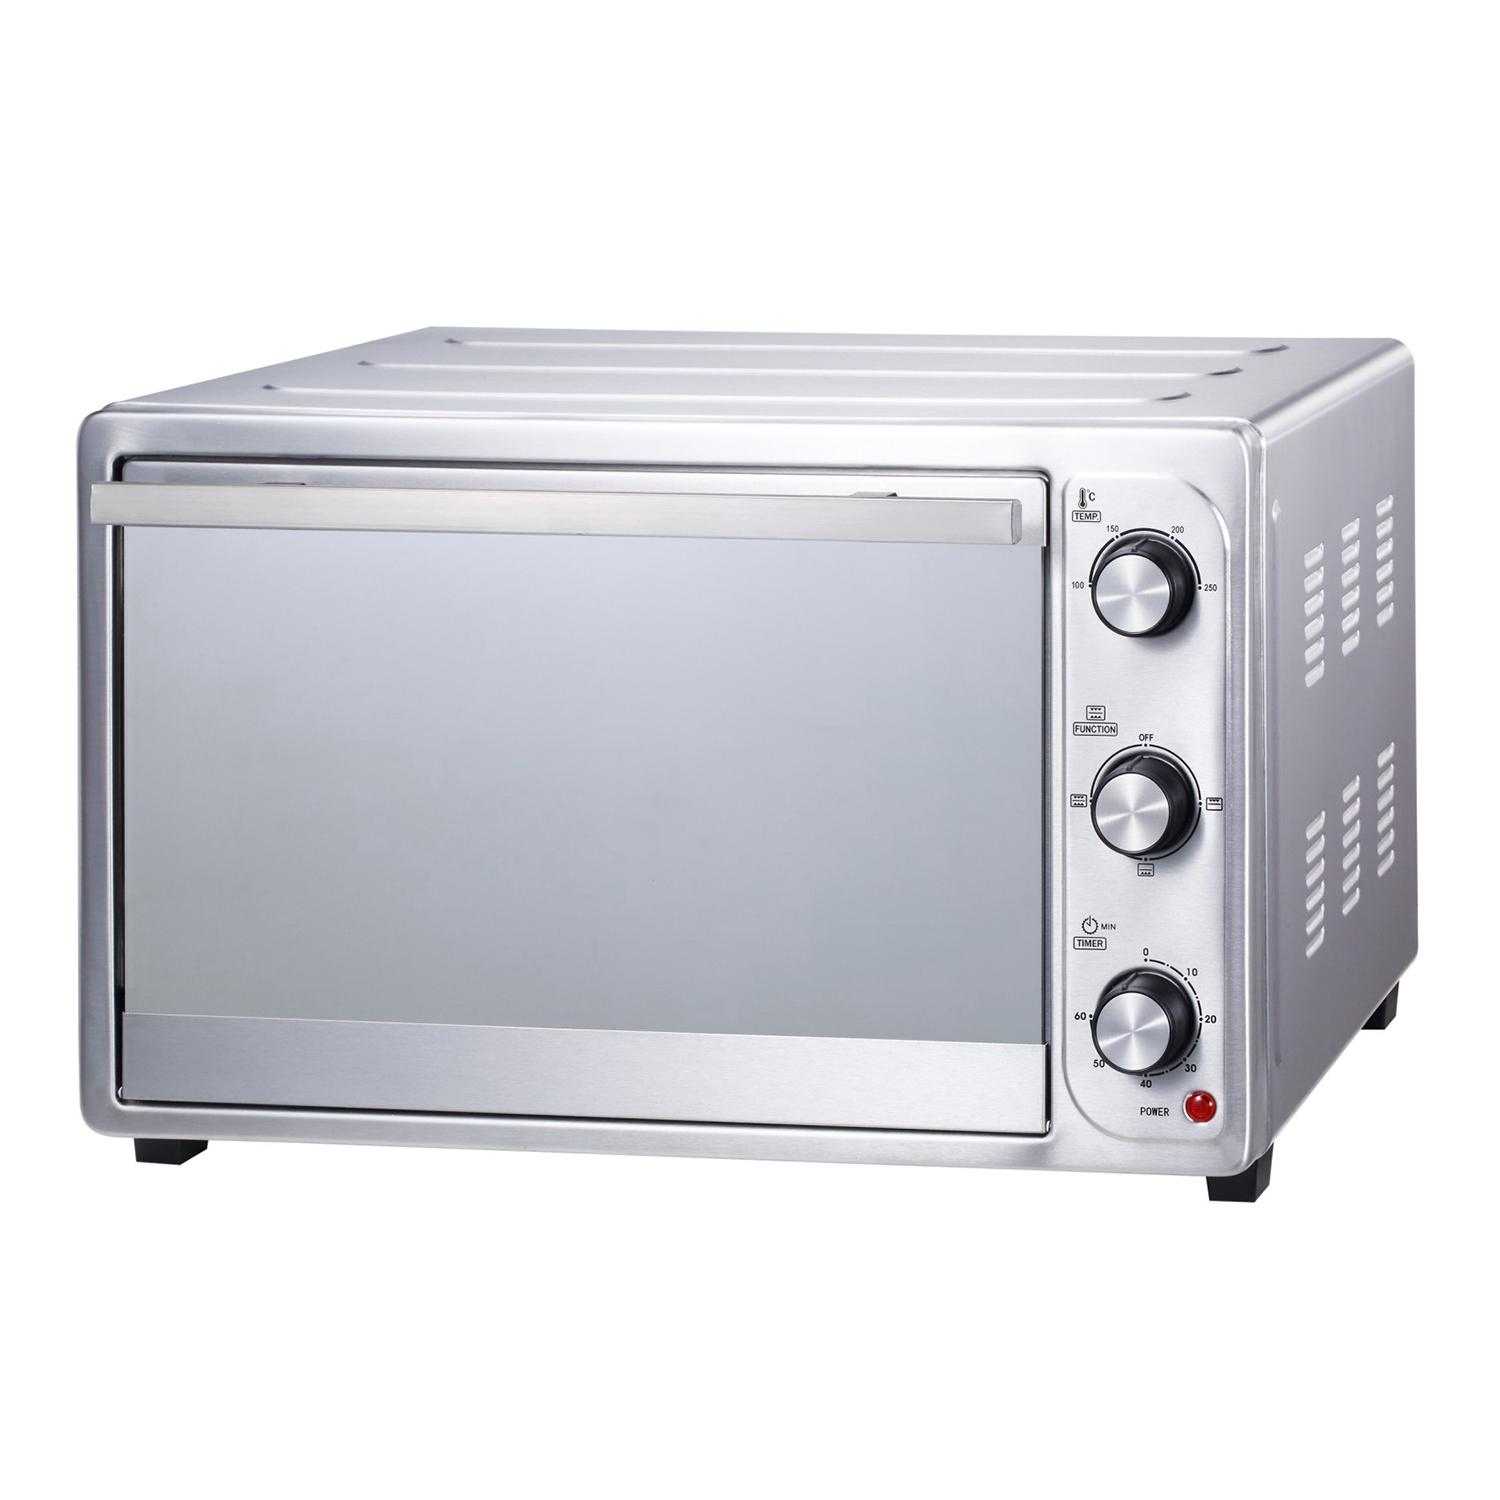 304 stainless steel 48L home appliance electric convection oven  1